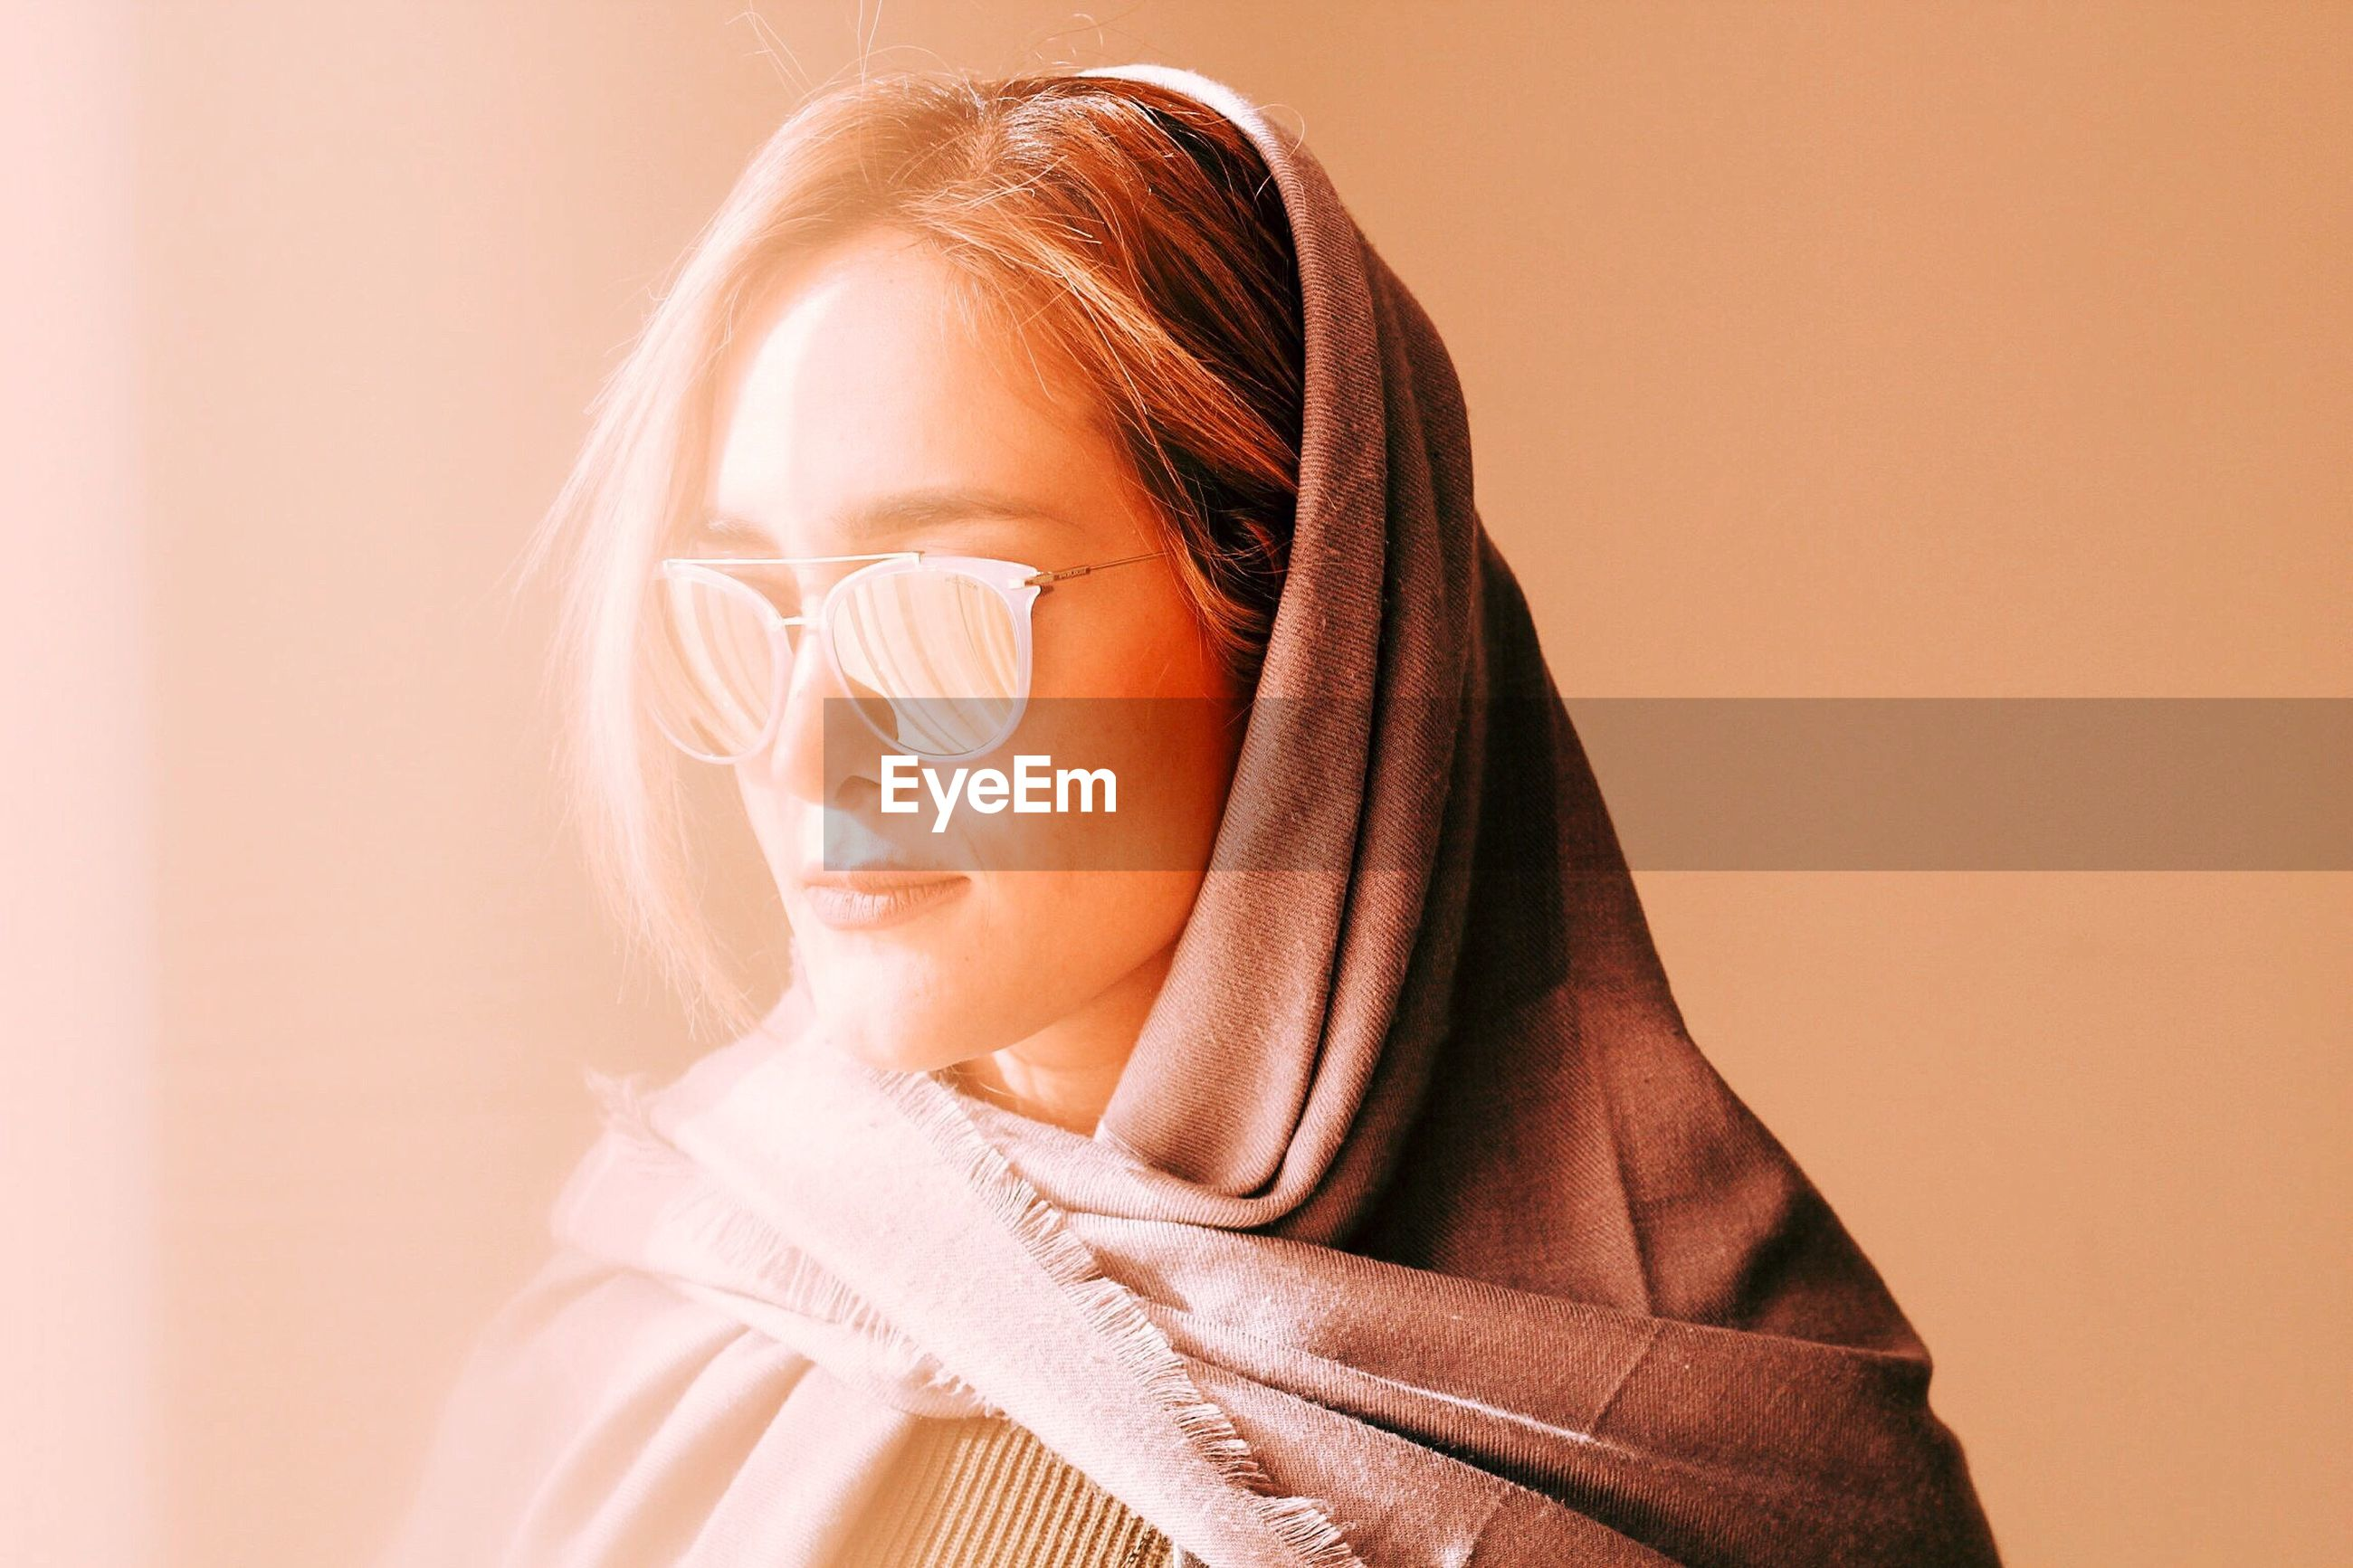 Close-up of beautiful woman in sunglasses and scarf against wall